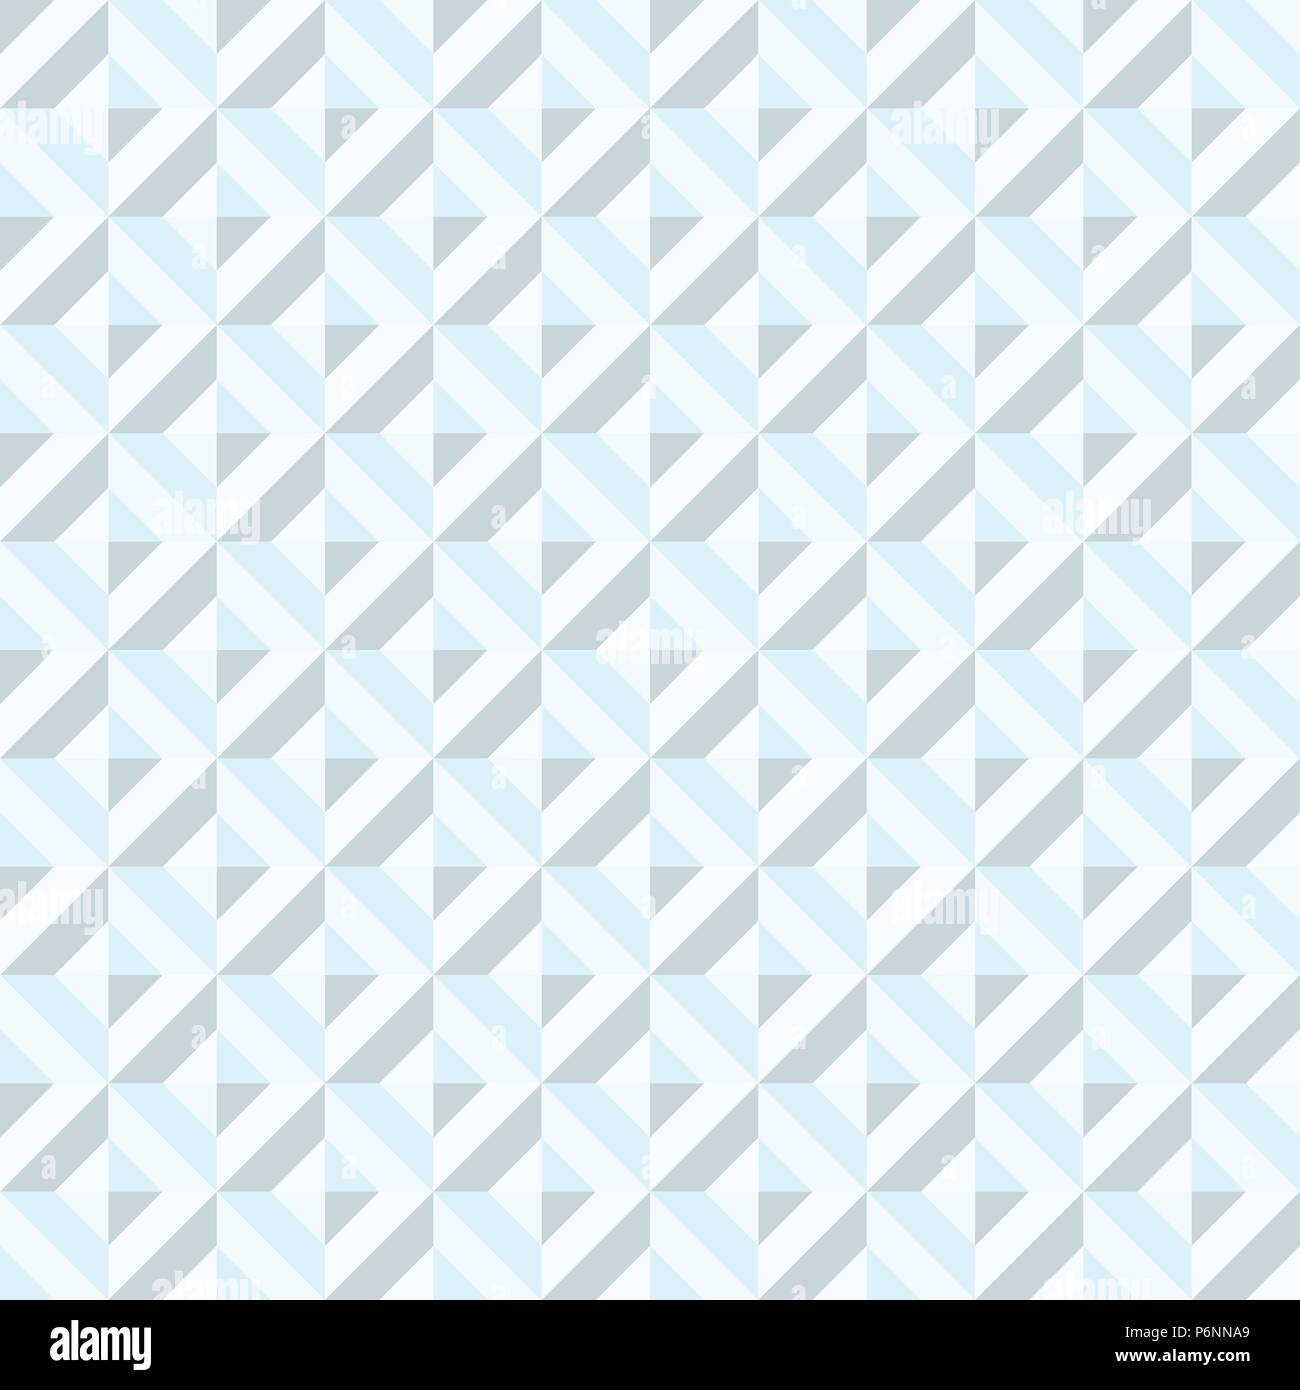 Blue Abstract rectangle seamless pattern. Modern rectangle for graphic design. - Stock Vector